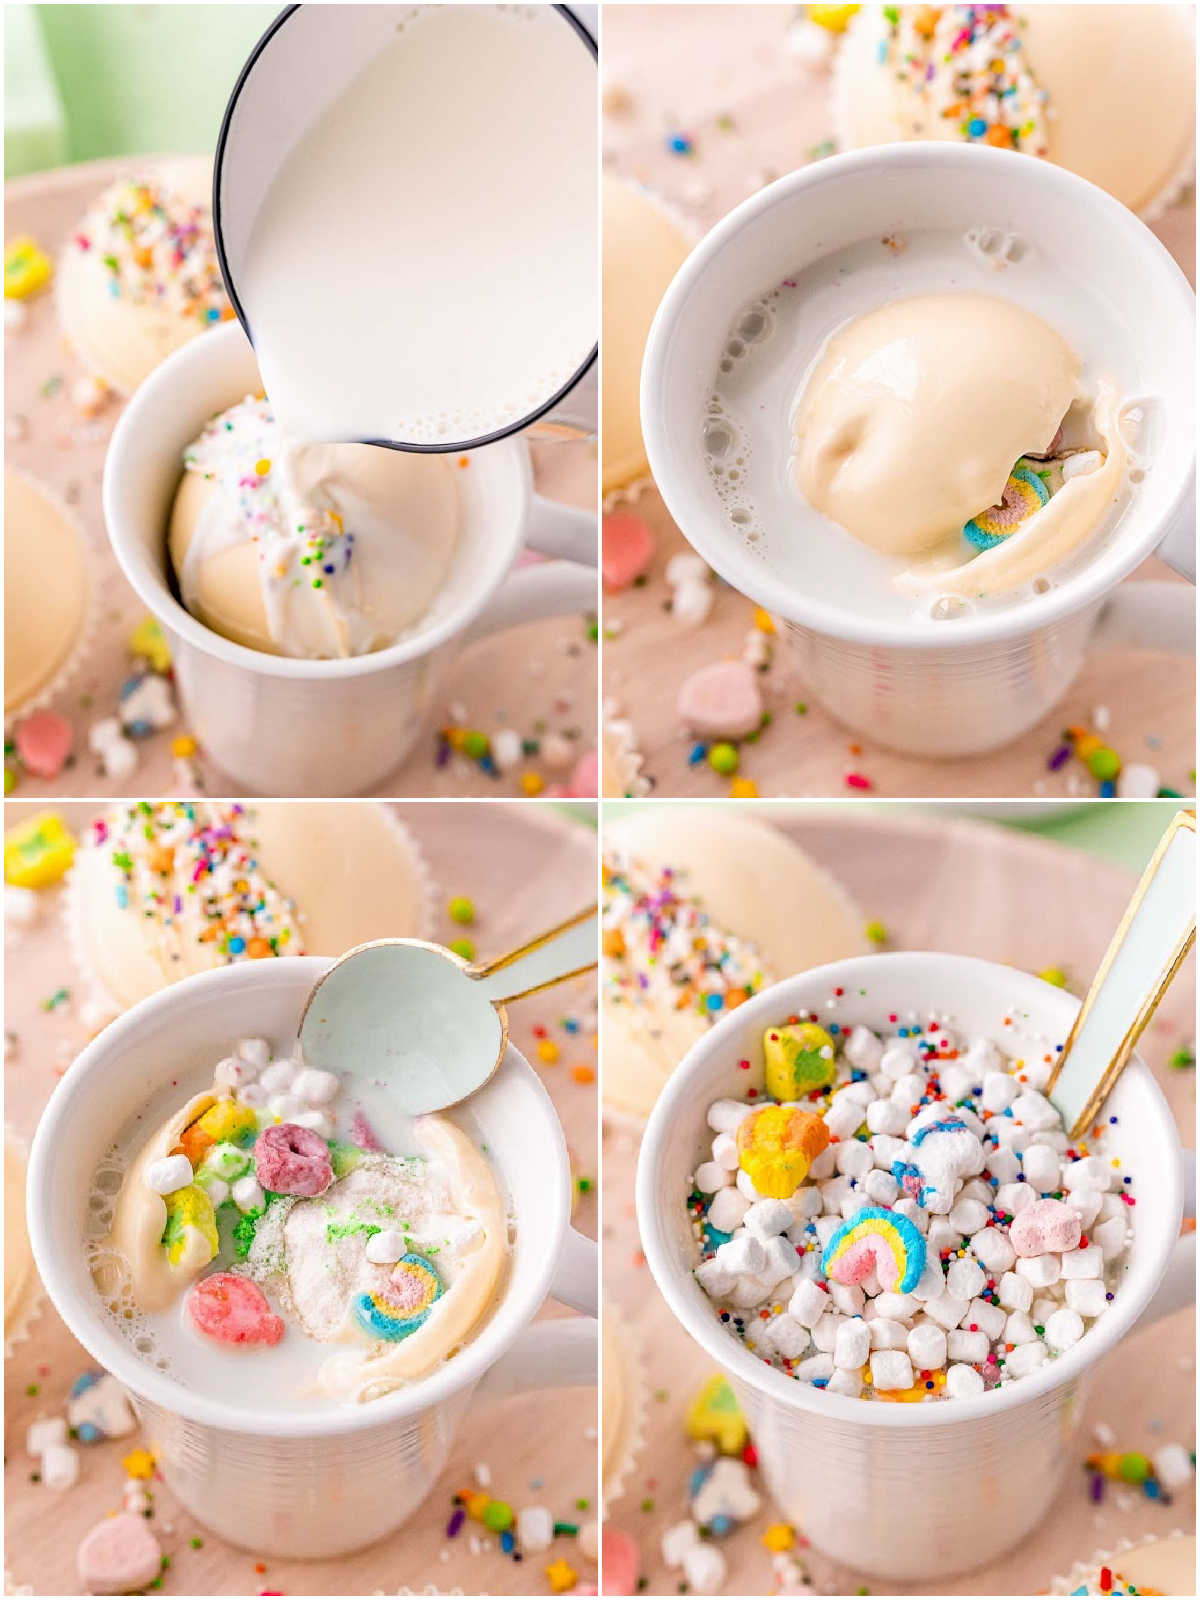 A picture collage of how to make Rainbow White Hot Chocolate.